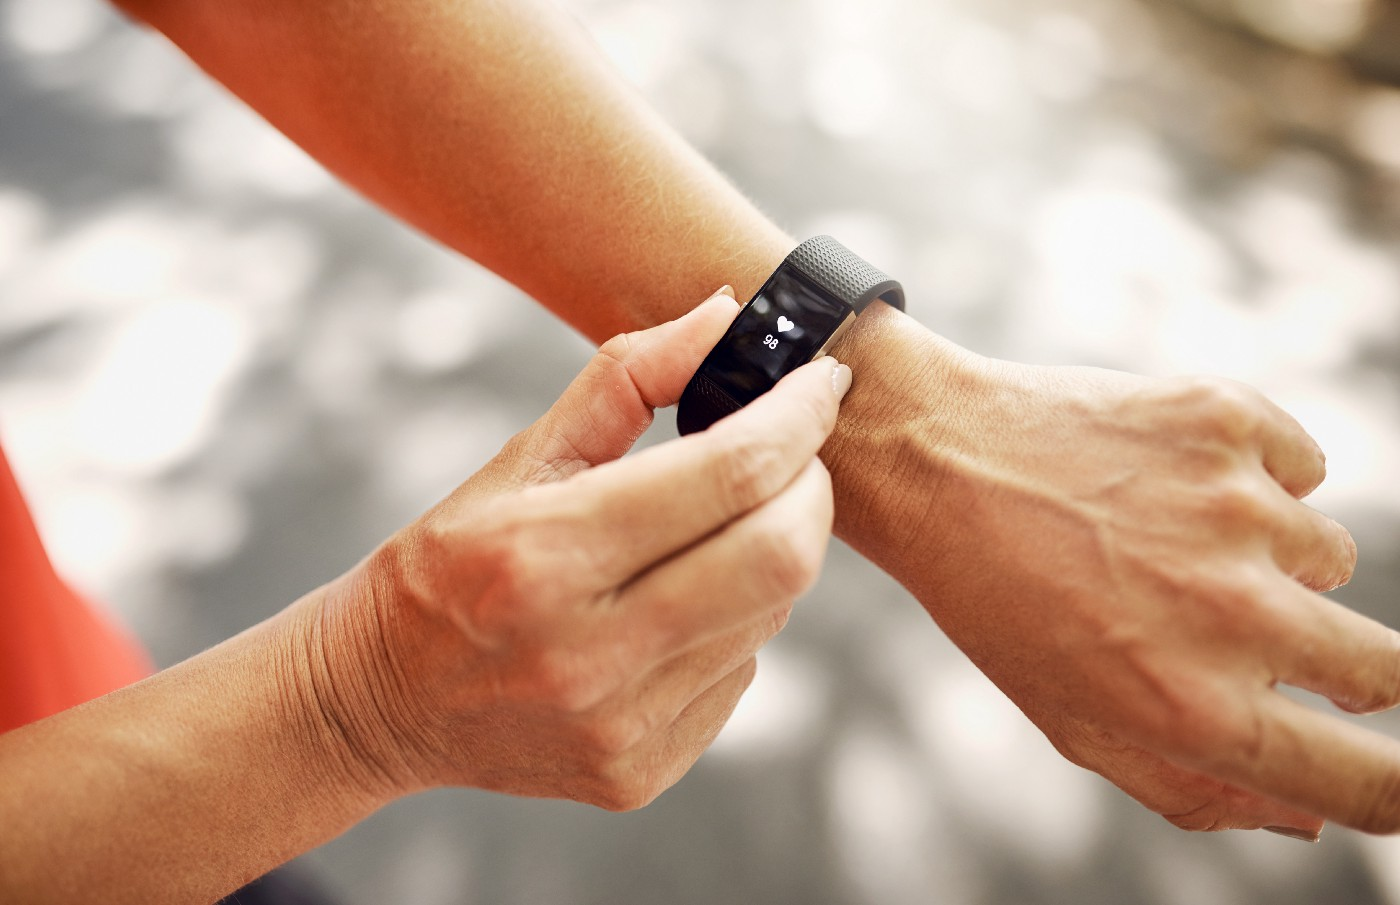 A close up of a person checking a wearable fitness tracker on their wrist.